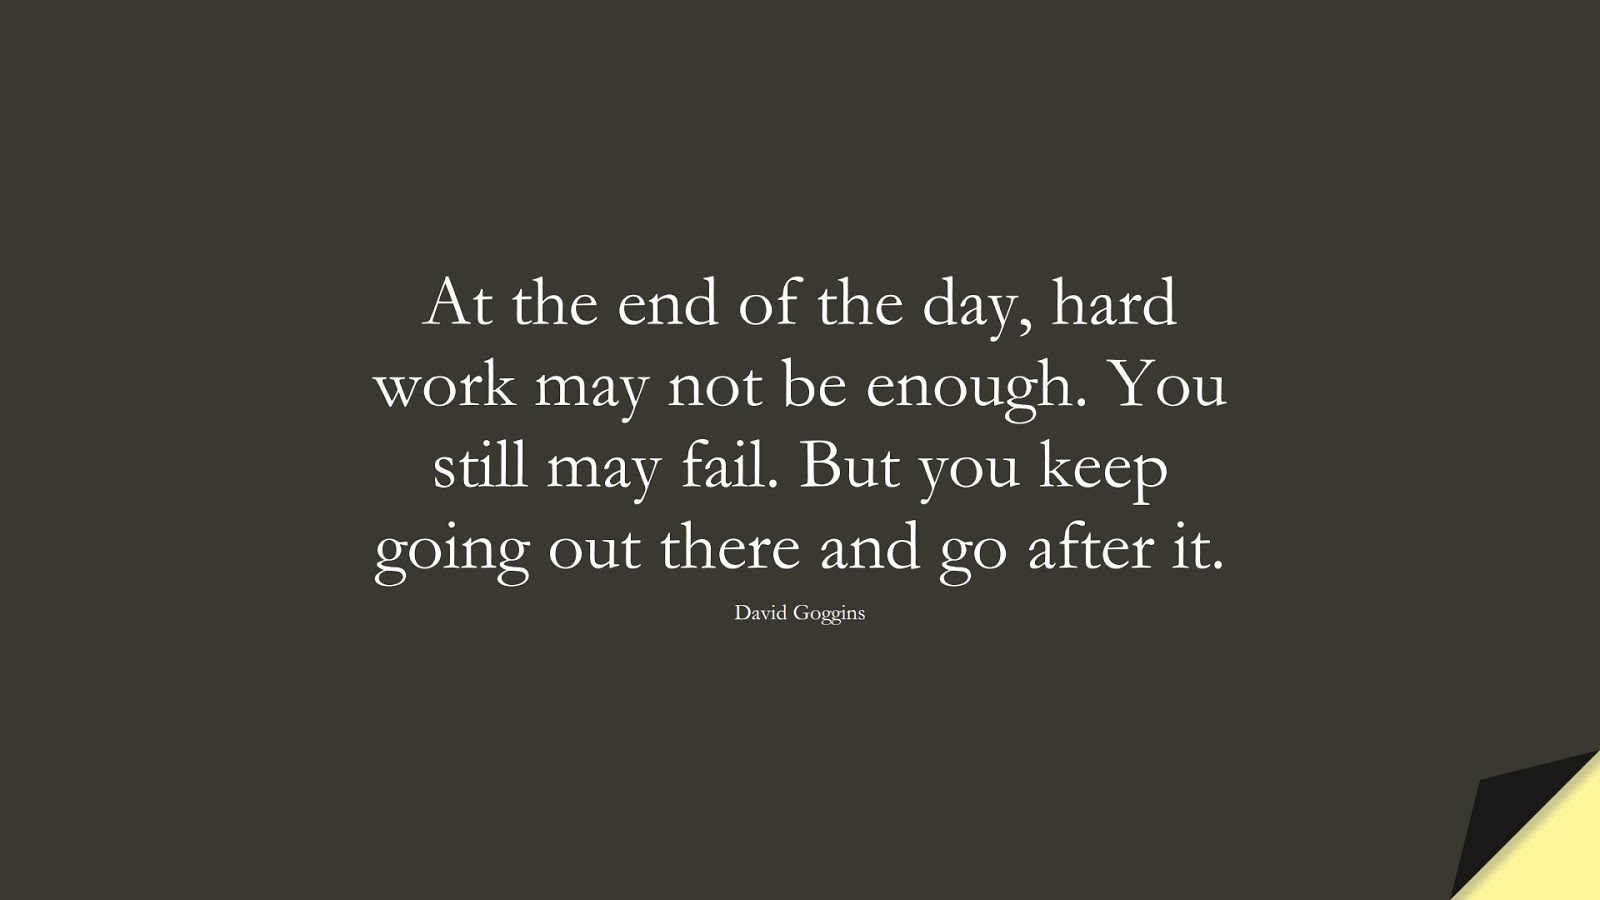 At the end of the day, hard work may not be enough. You still may fail. But you keep going out there and go after it. (David Goggins);  #EncouragingQuotes